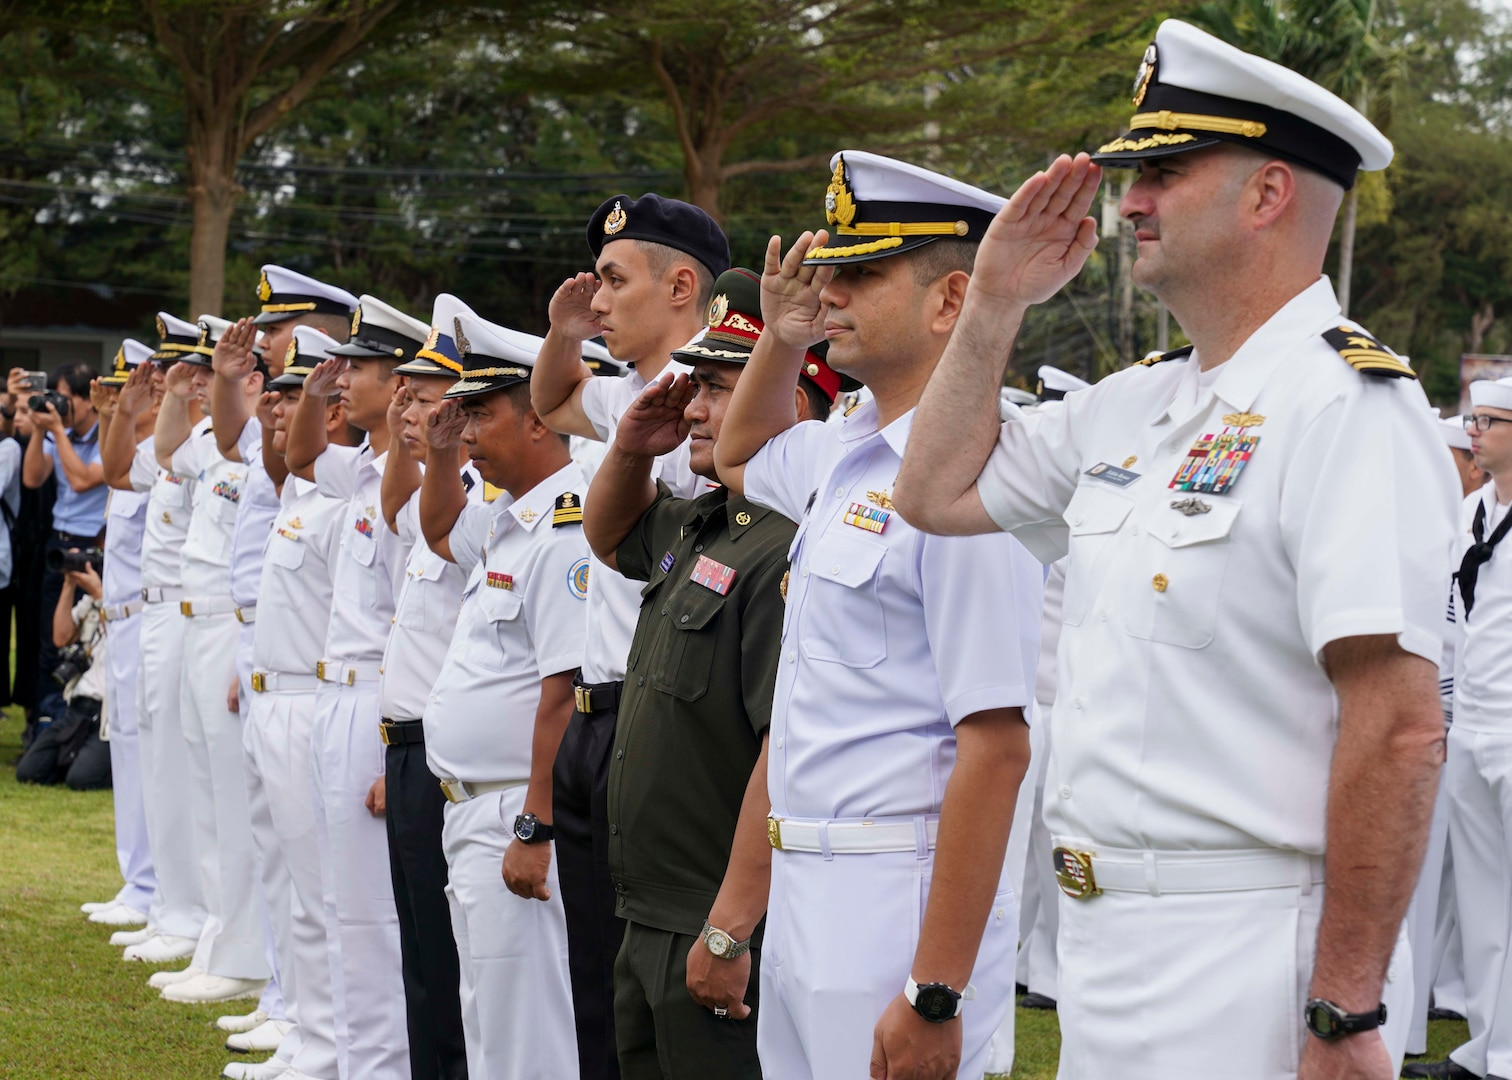 SATTAHIP, Thailand (Sept. 2, 2019) - U.S. Navy Sailors and maritime forces of ASEAN member states salute while standing in formation together during the opening ceremony for the ASEAN-U.S. Maritime Exercise (AUMX) at Sattahip Naval Base.